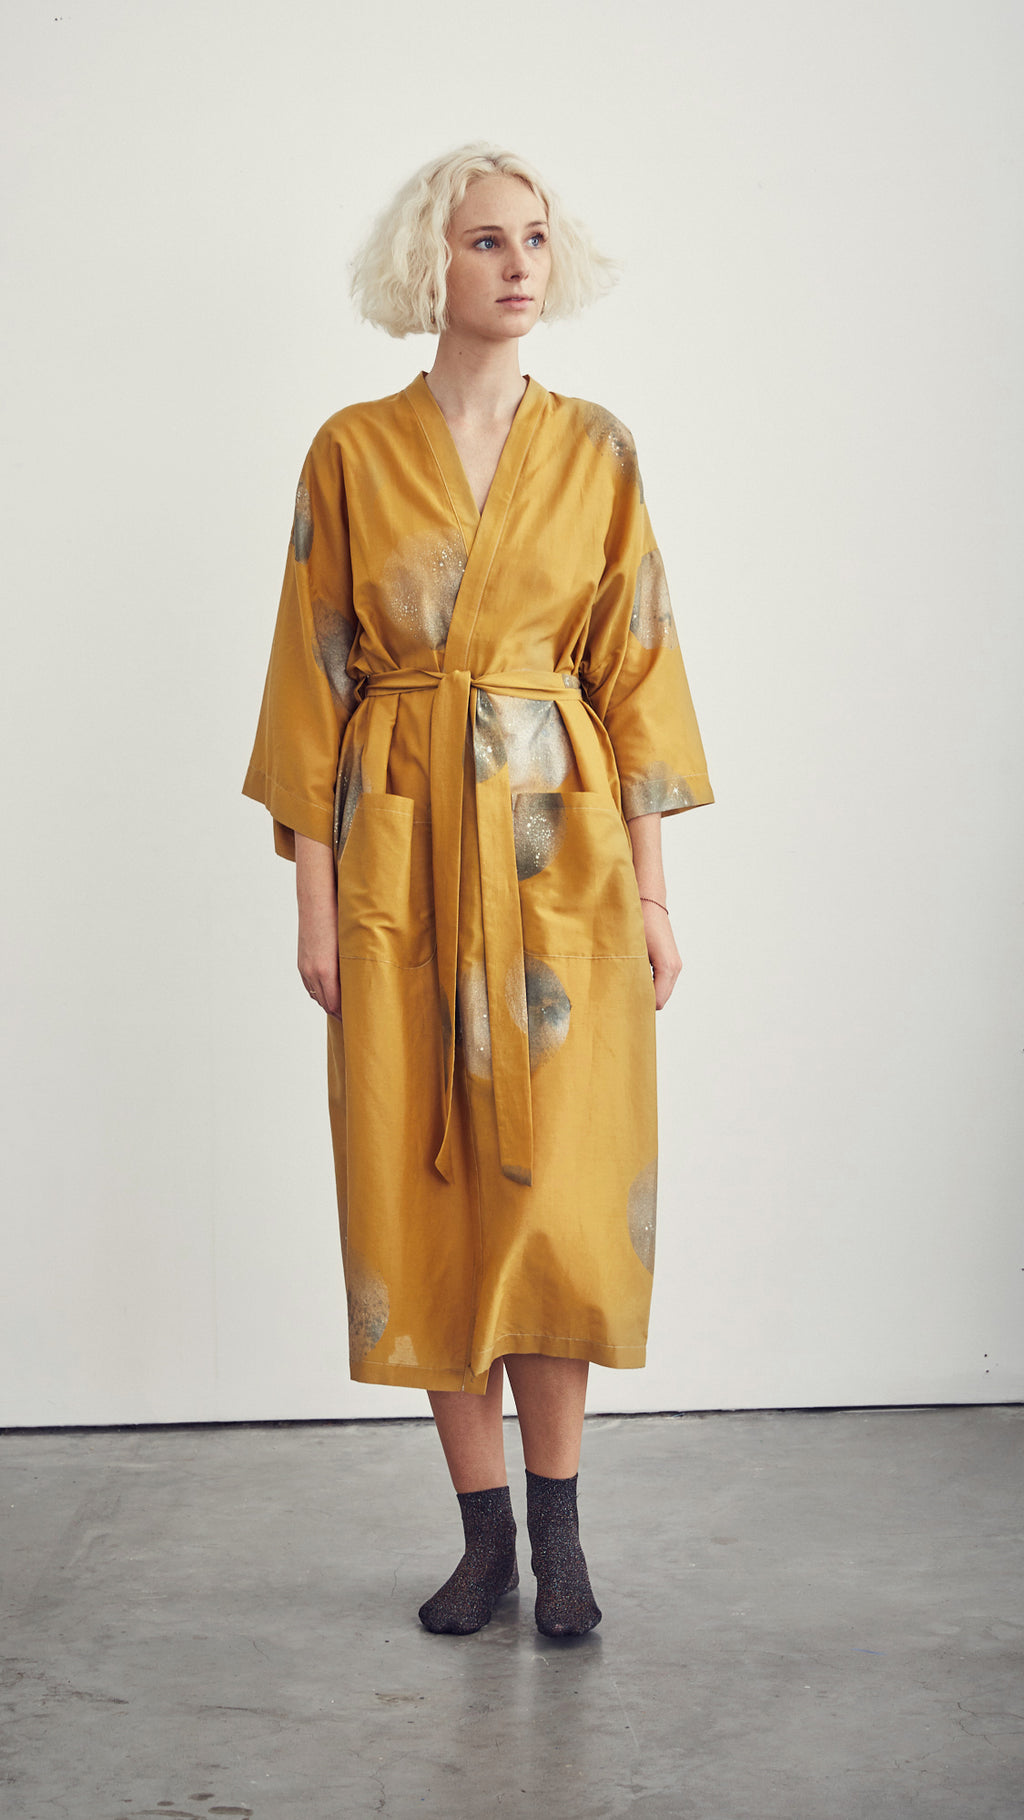 ROBE / silver suns on ochre